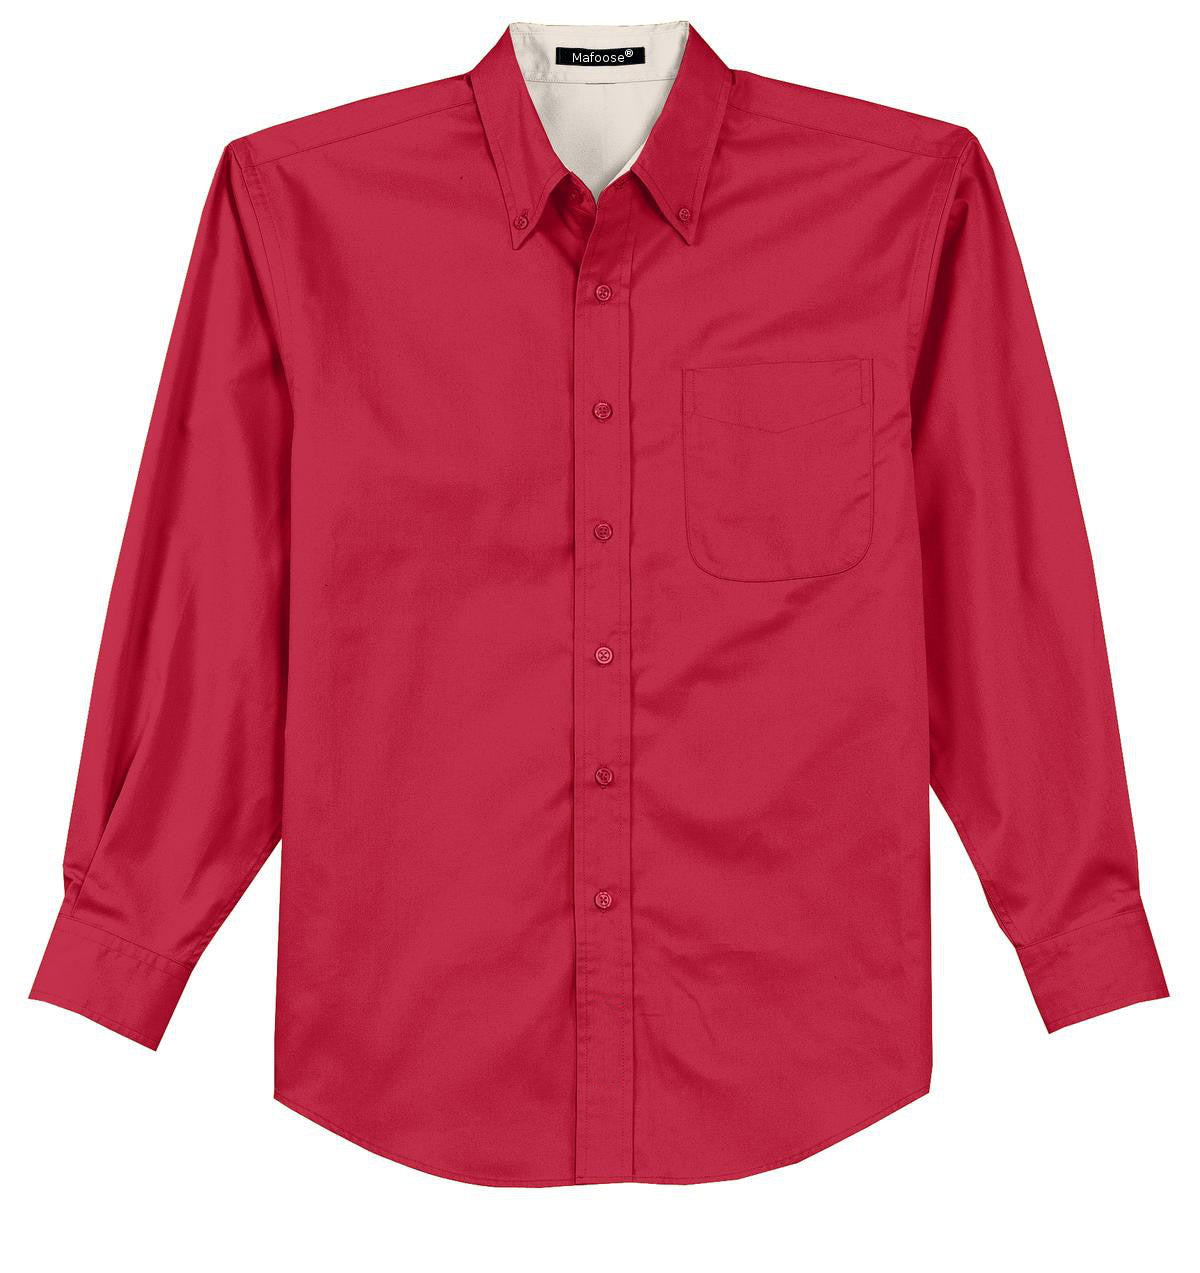 Mafoose Men's Tall Long Sleeve Easy Care Shirt Red/ Light Stone-Front